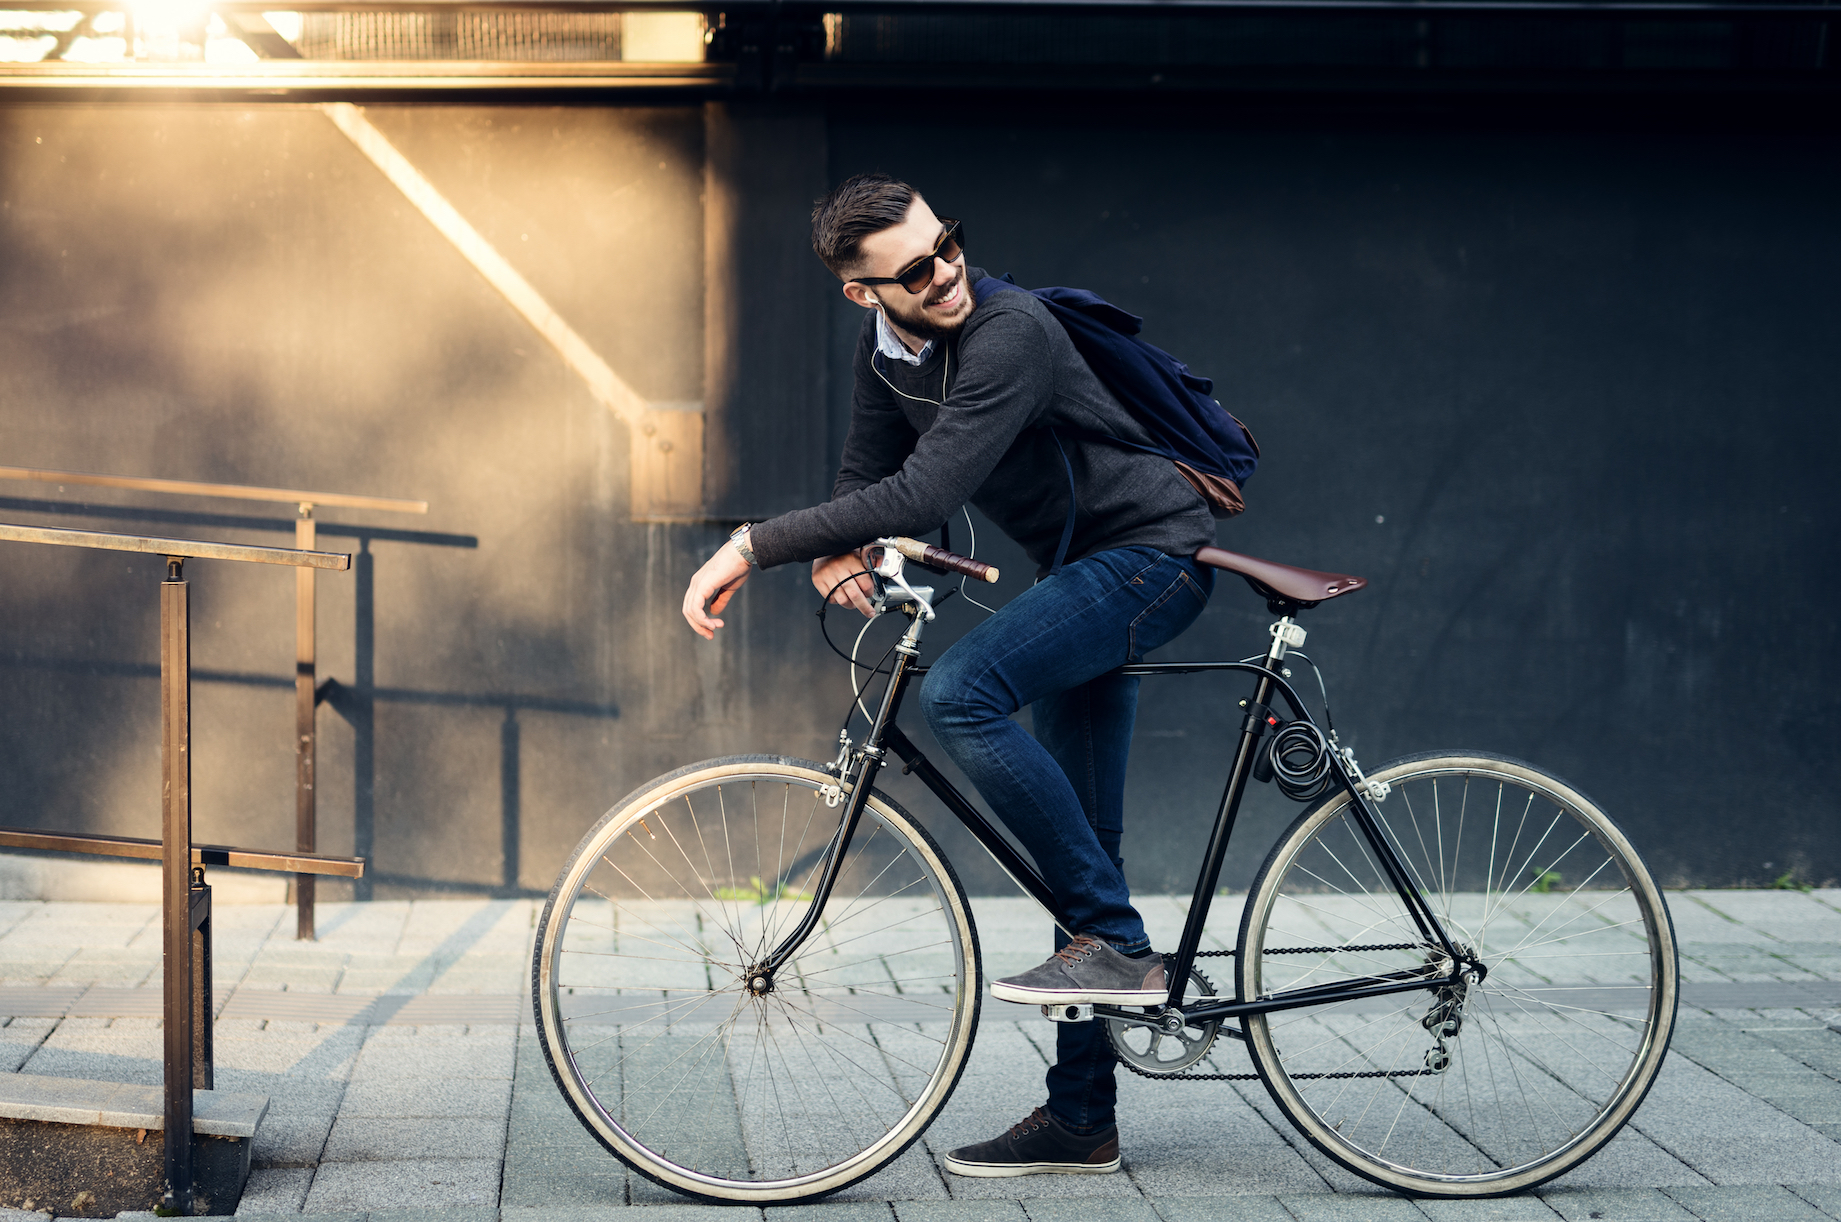 A new study has found that cycling is the method of transport most associated with the greatest health benefits.